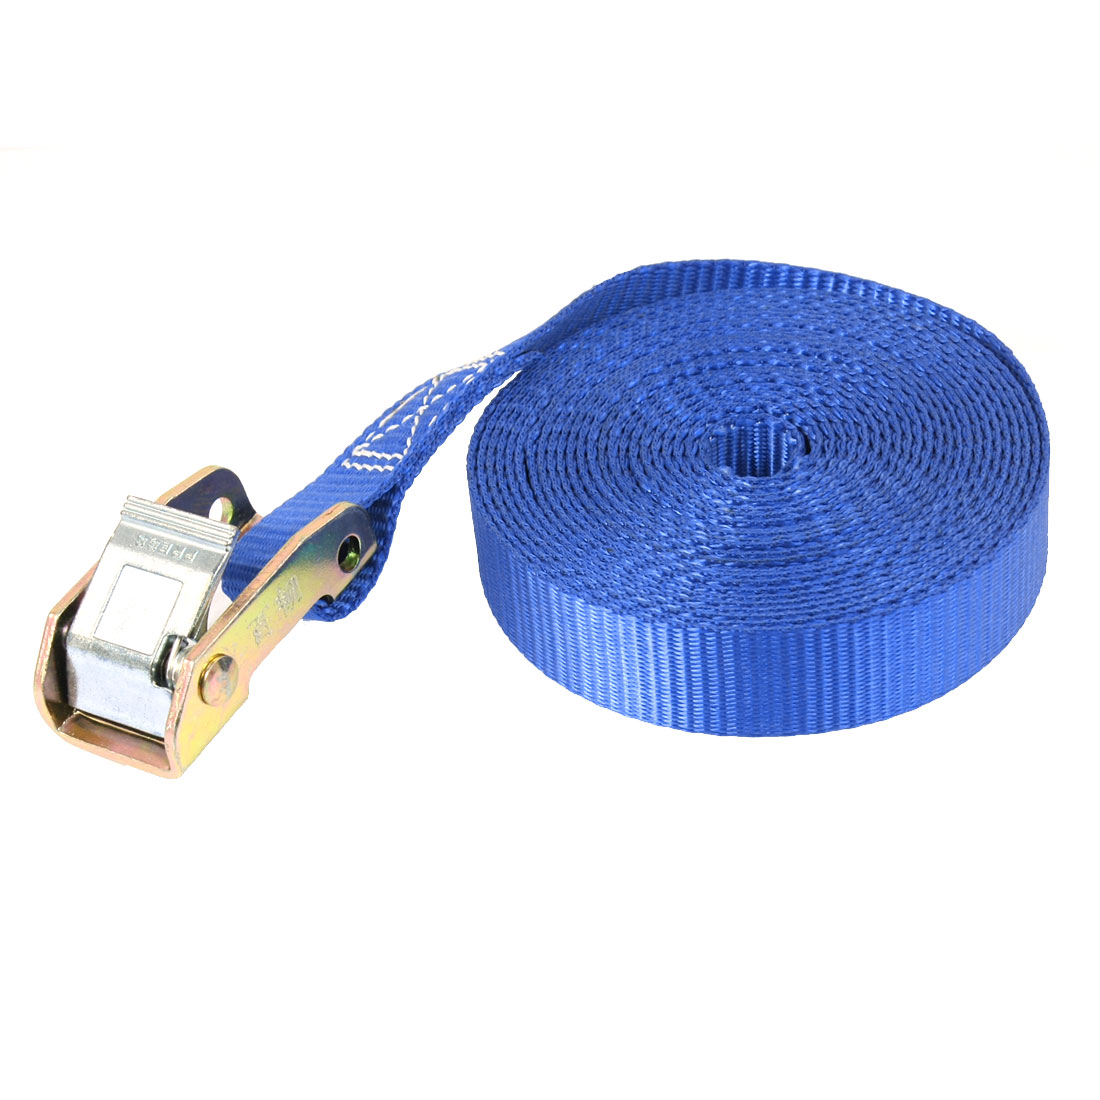 Journey Luggage Binding Metal Cam Buckle Tie Down Strap 5M 16ft Blue